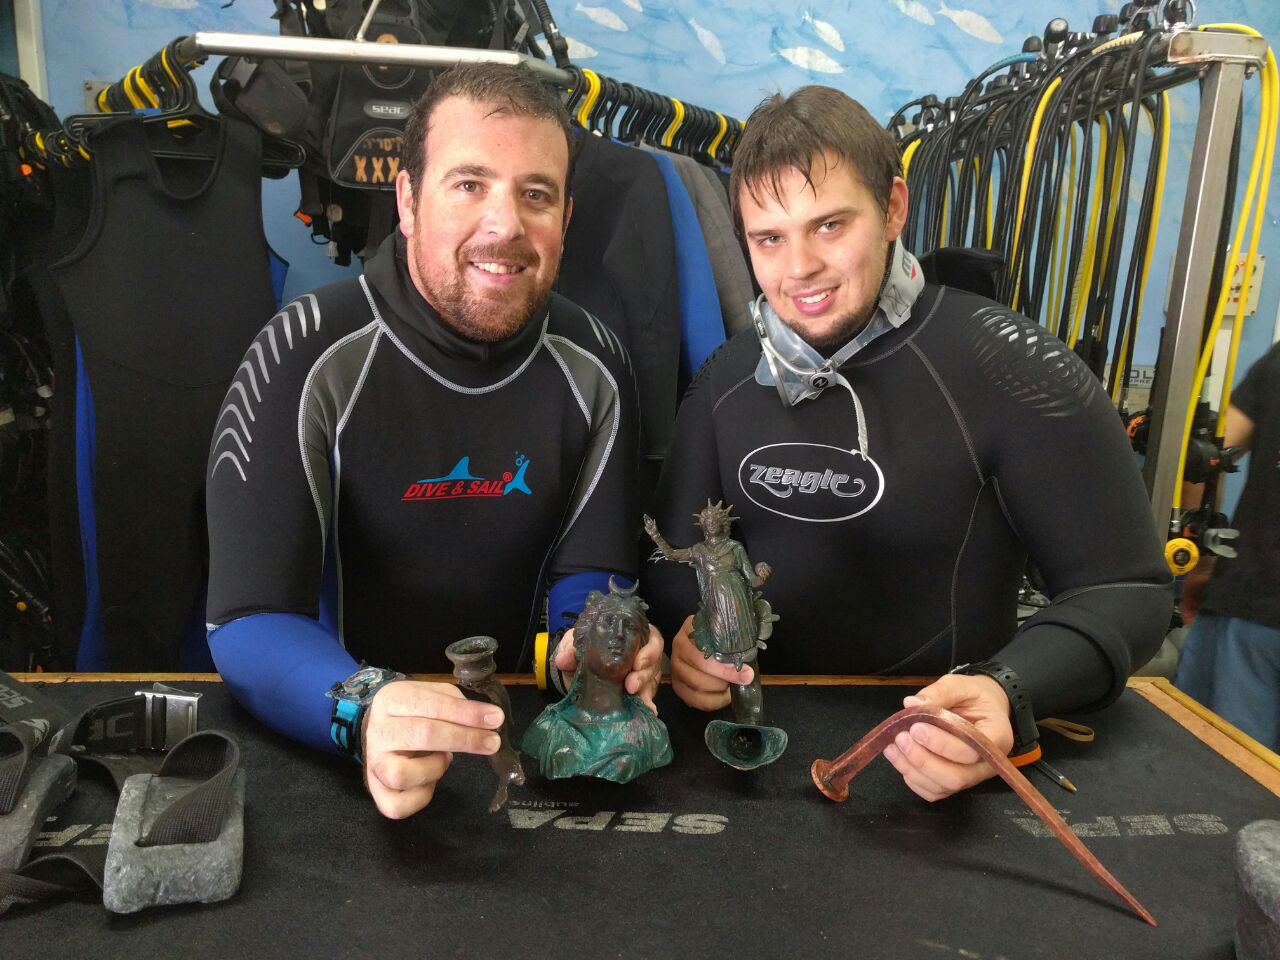 Exemplary citizenship: Divers Ran Feinstein (right) and Ofer Ra'anan after the discovery. Photo courtesy of the Old Caesarea Diving Center